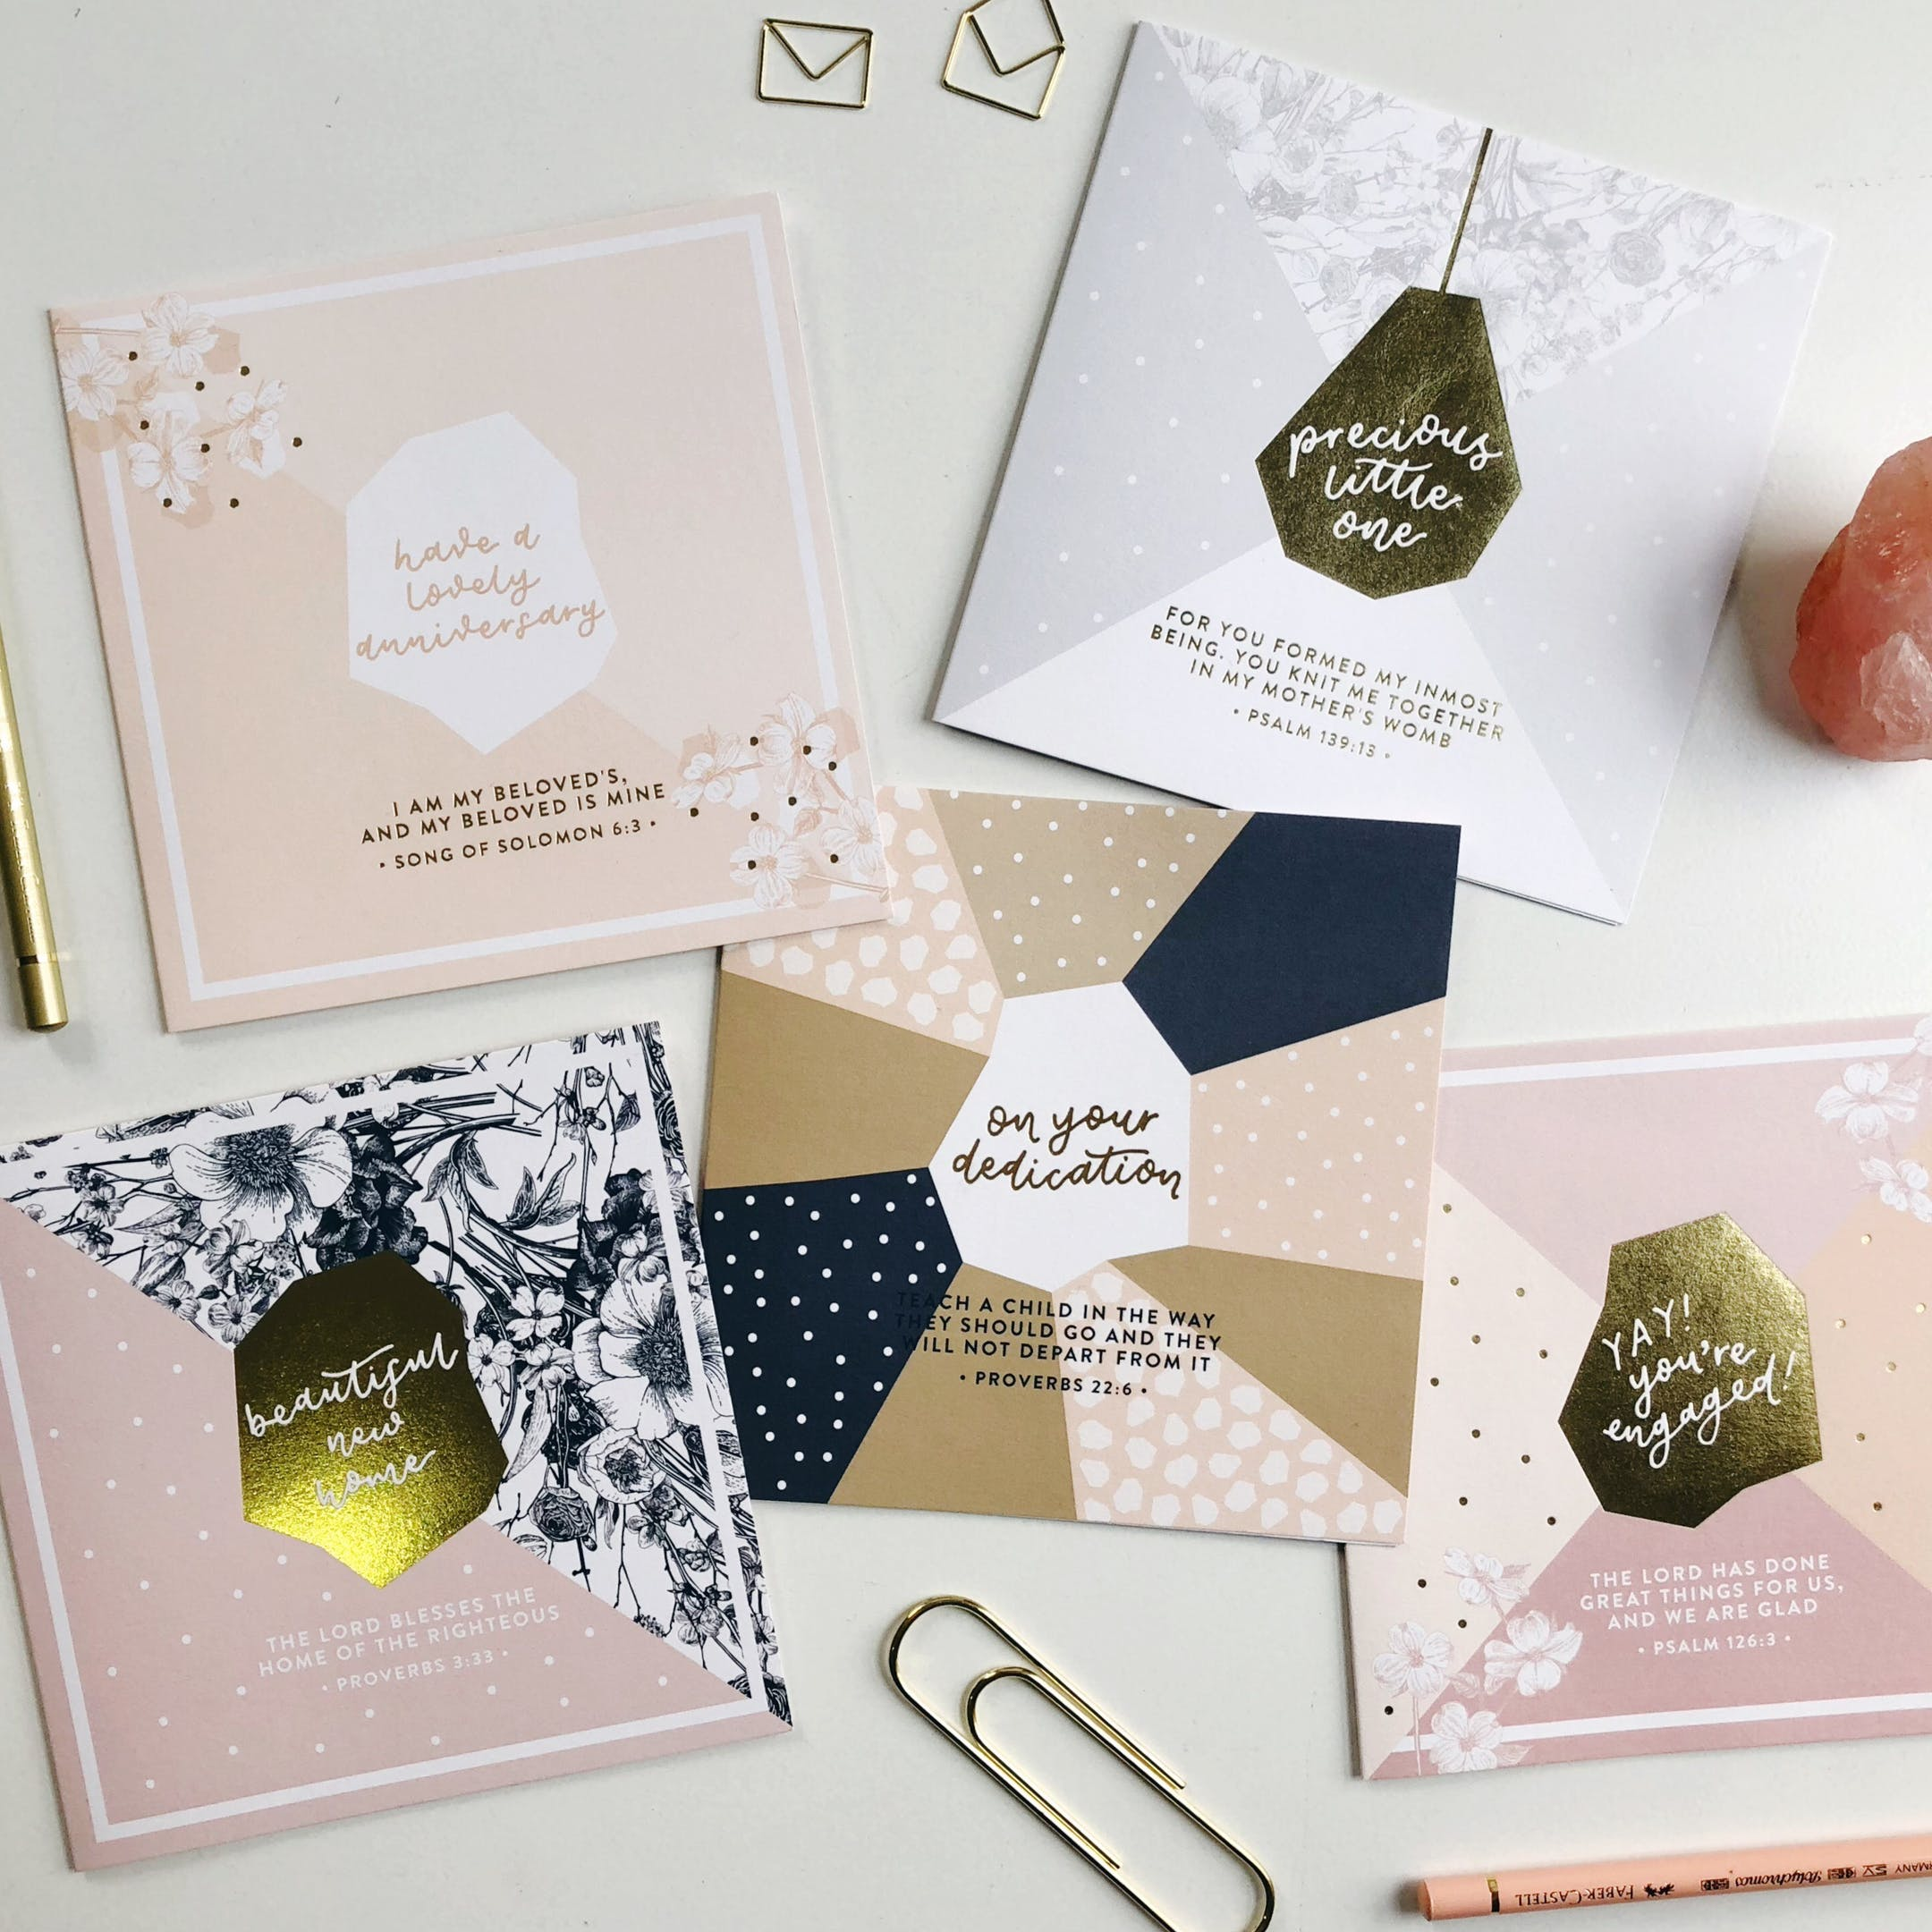 More Than Gold Christian Greeting Cards | Cheerfully Given - Christian Cards UK